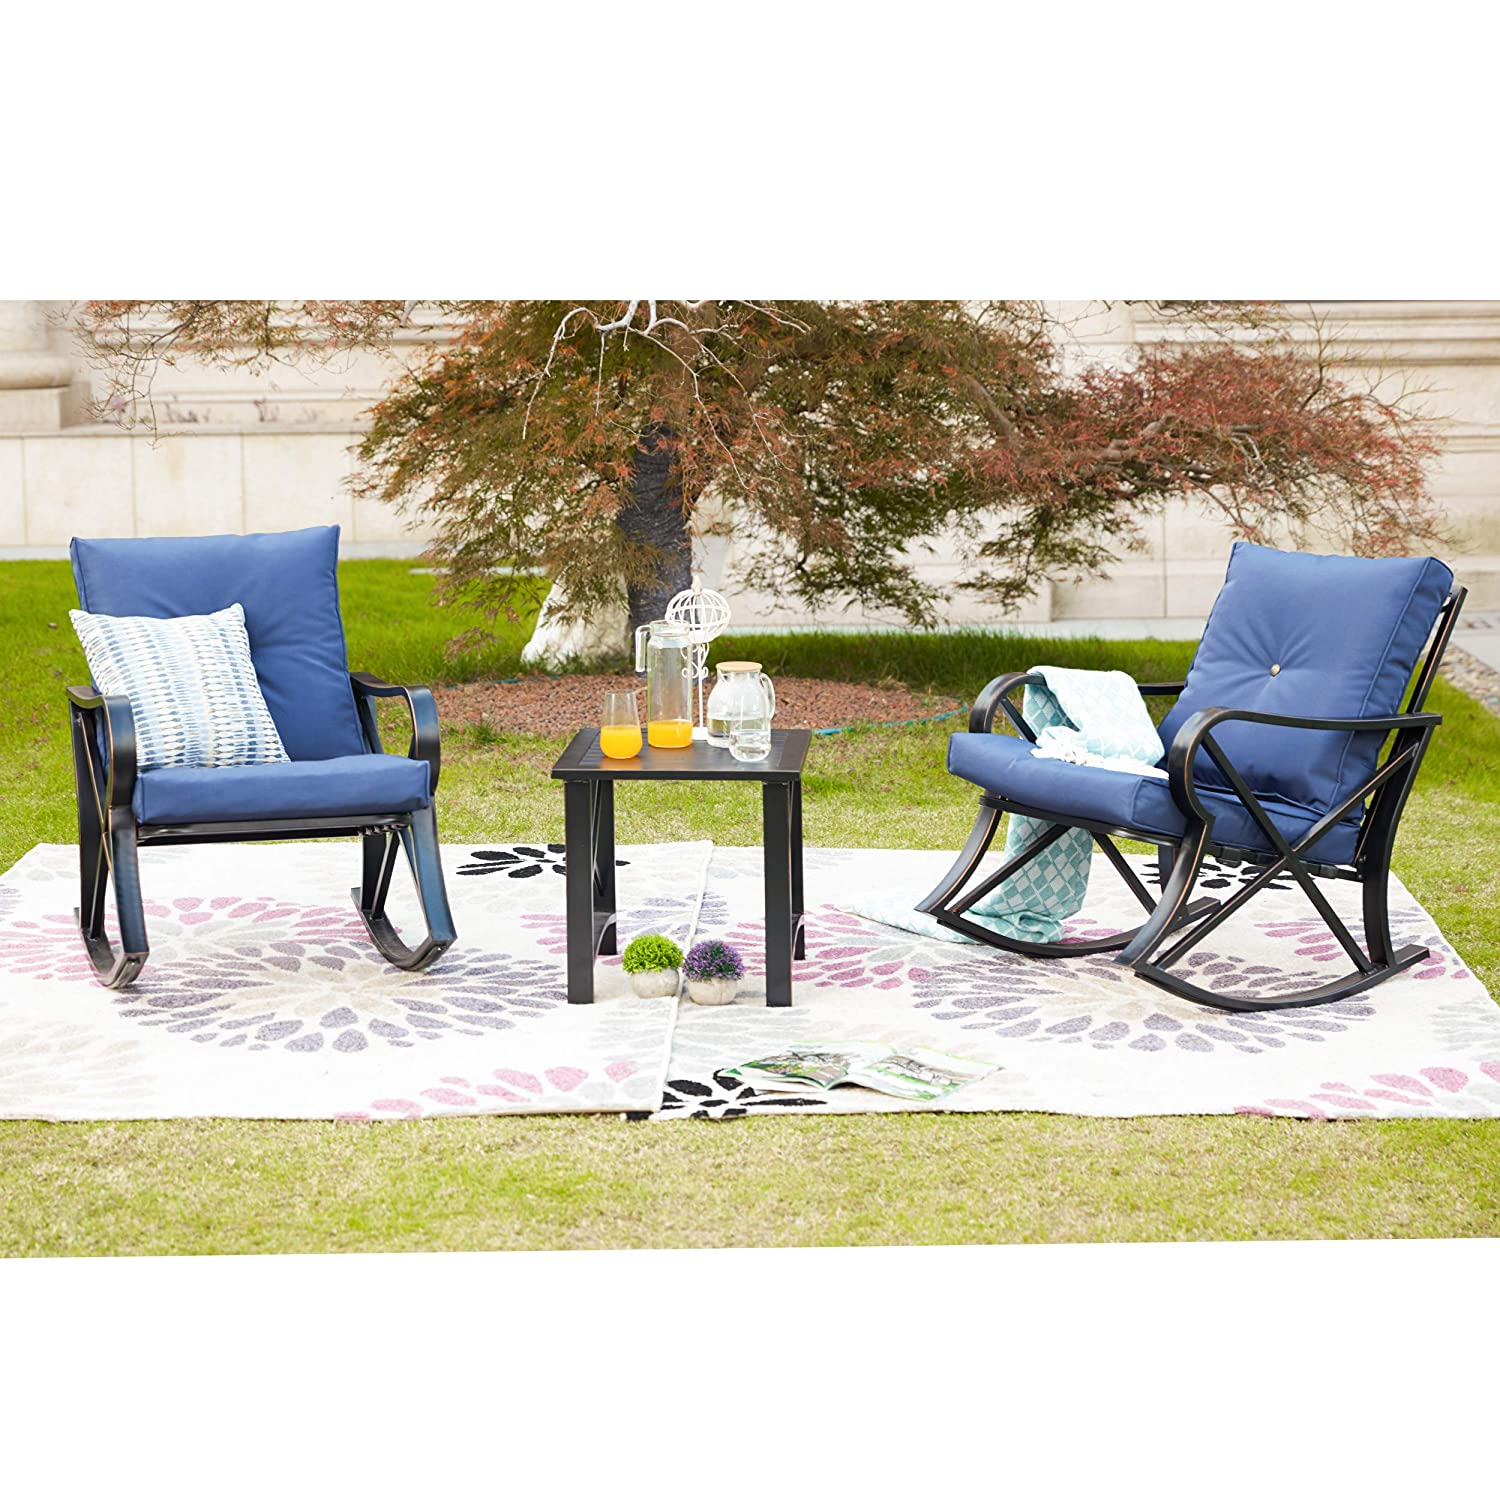 Pleasing Lokatse Home 3 Piece Patio Outdoor Rocking Chair Bistro Sets With Coffee Table Blue Cushions Ibusinesslaw Wood Chair Design Ideas Ibusinesslaworg